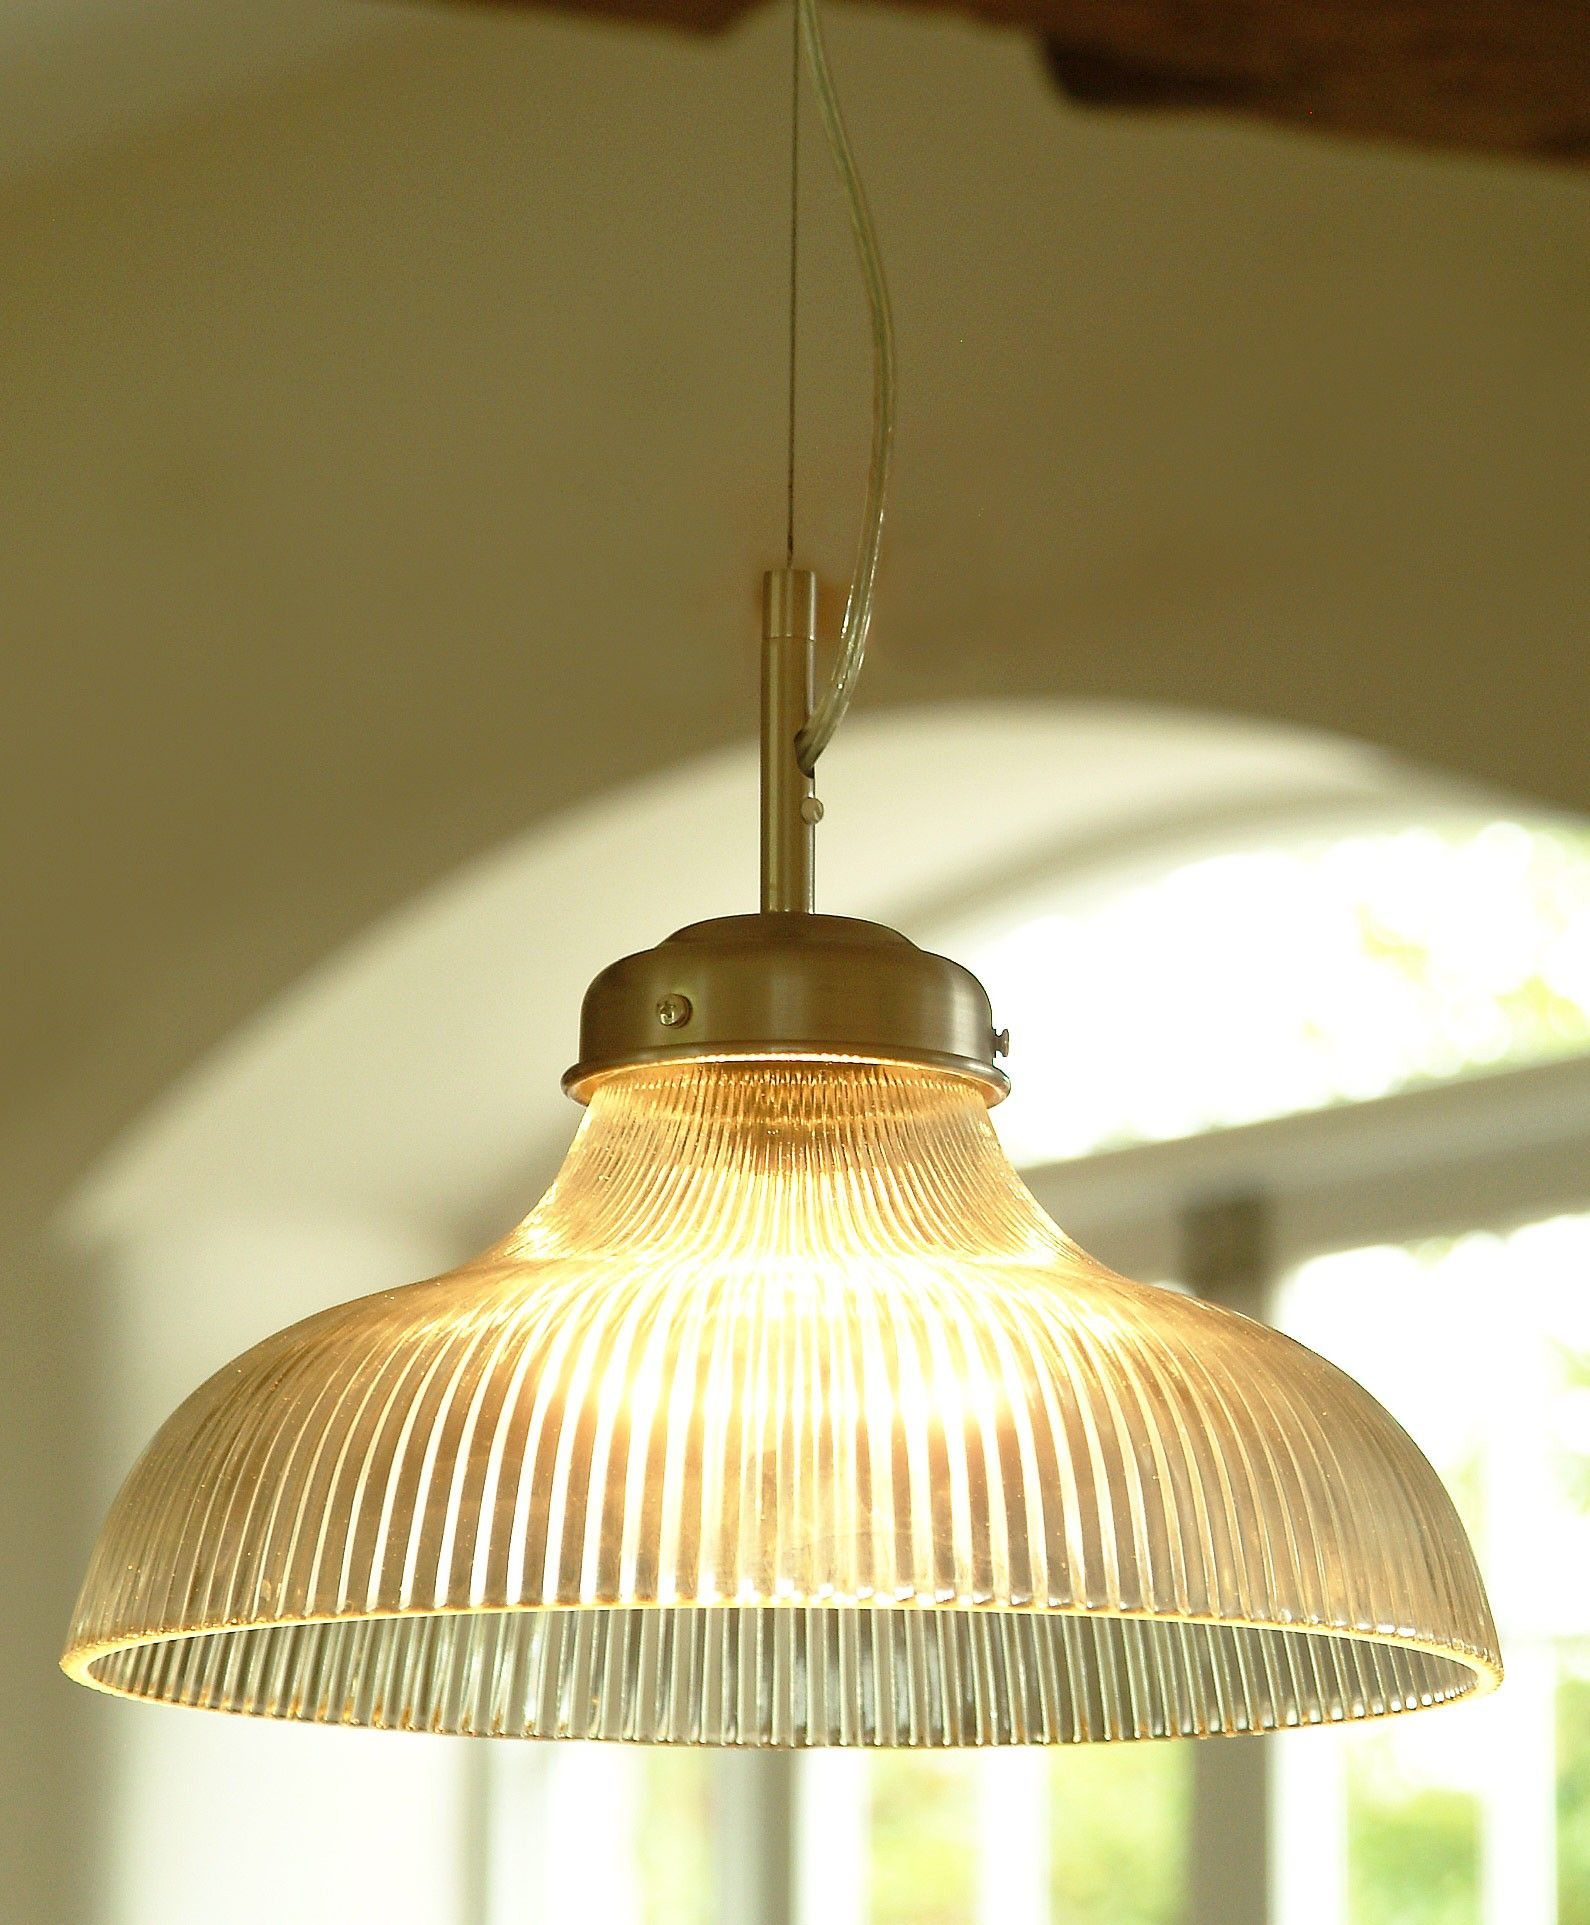 Pin by clare cusack on lighting ideas pinterest lighting